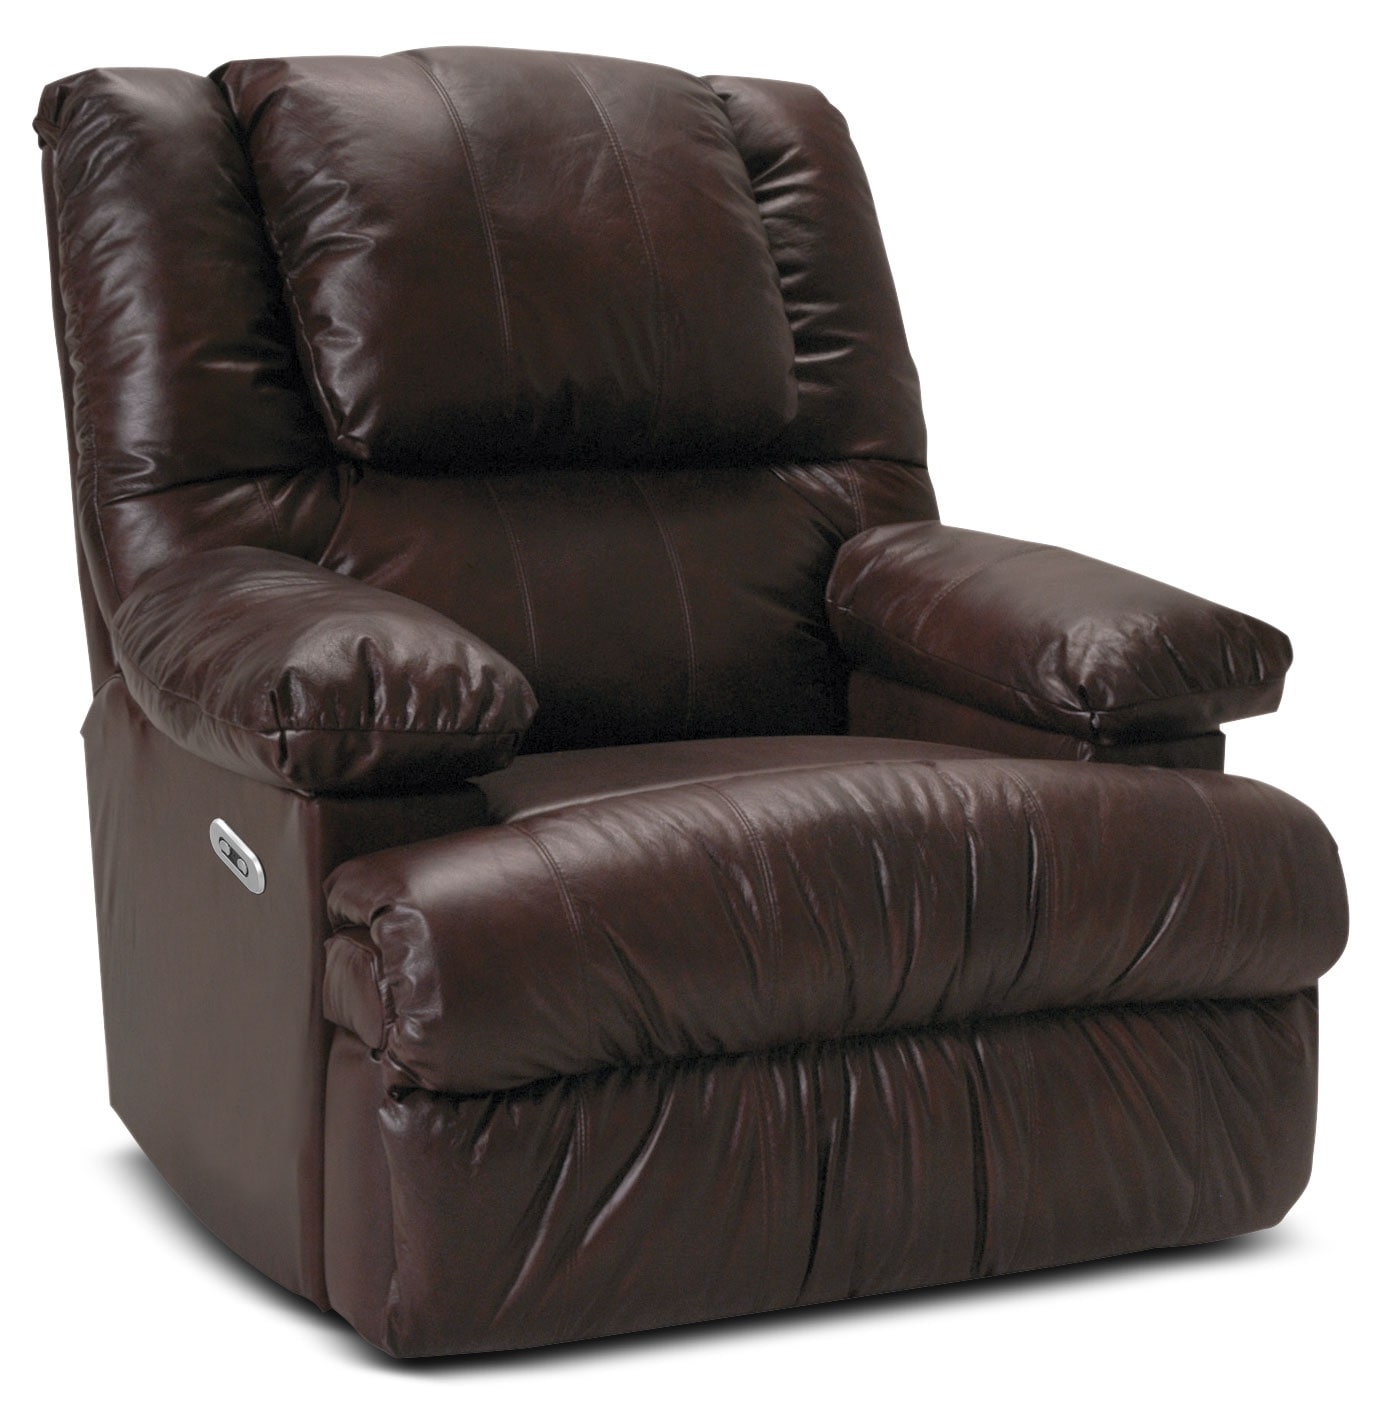 Designed2b 5598 Bonded Leather Power Recliner With Massage And Storage Java United Furniture